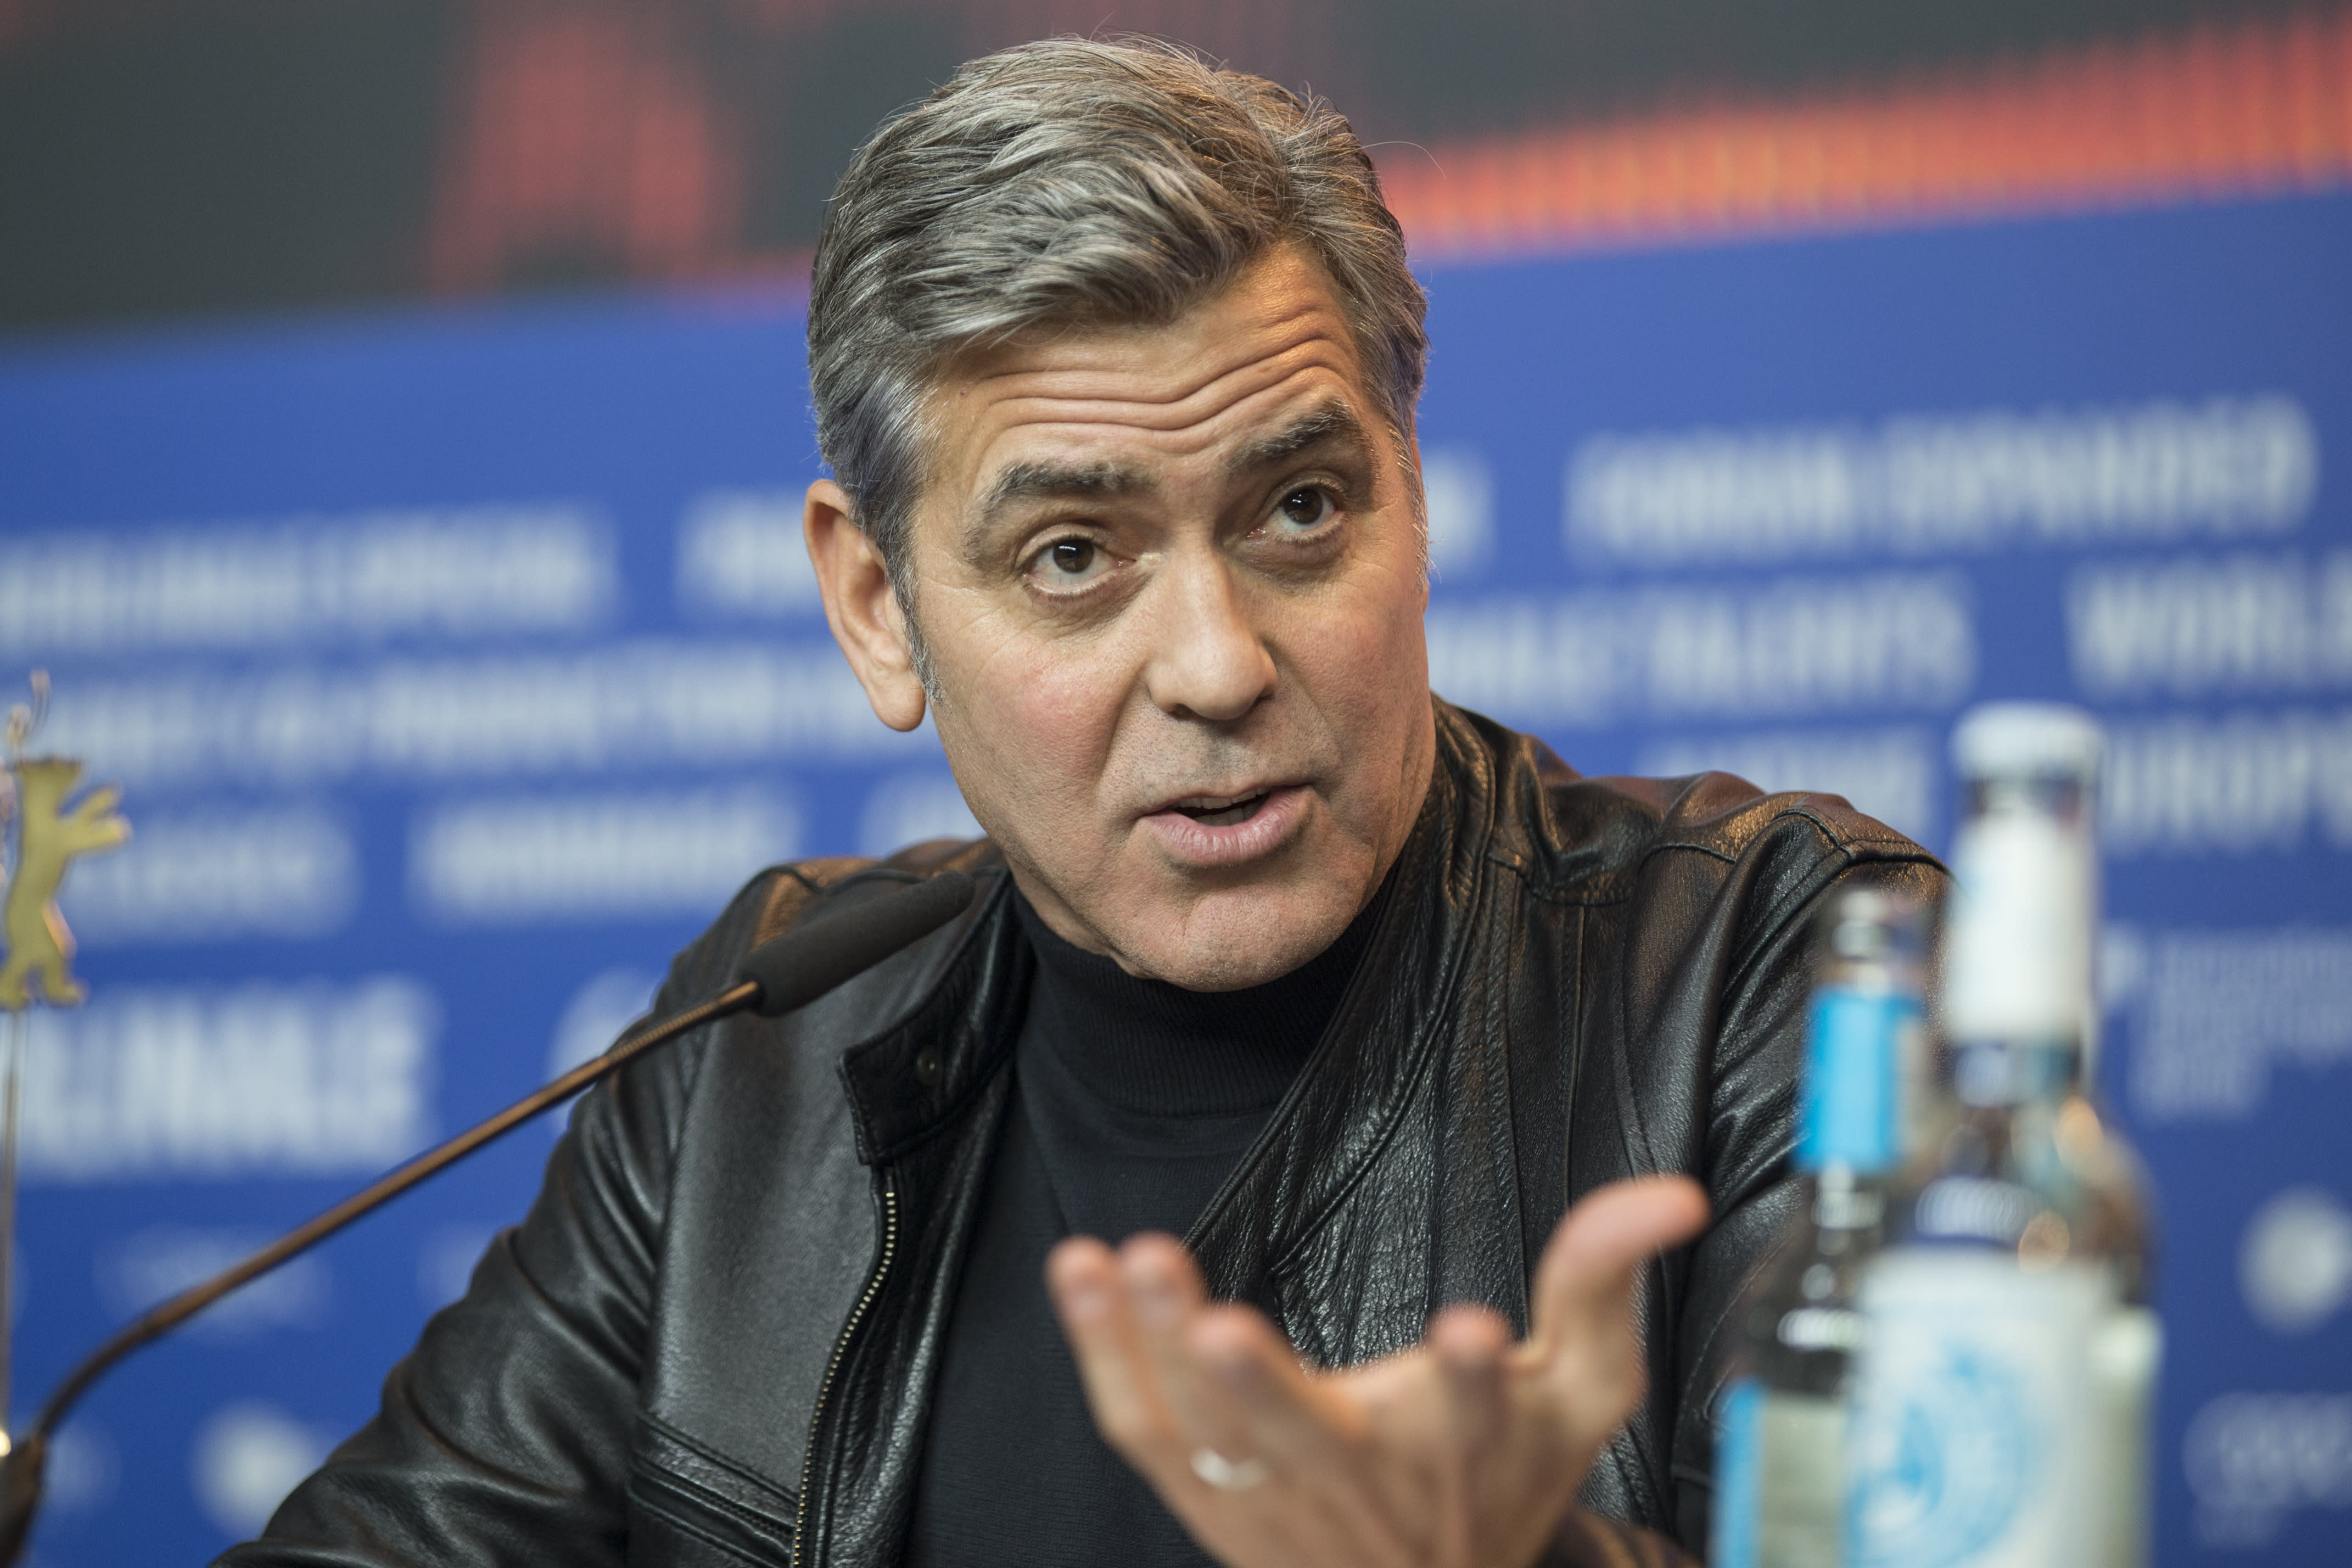 George Clooney, Coen Brothers Address Refugee Crisis at Berlin Film Festival